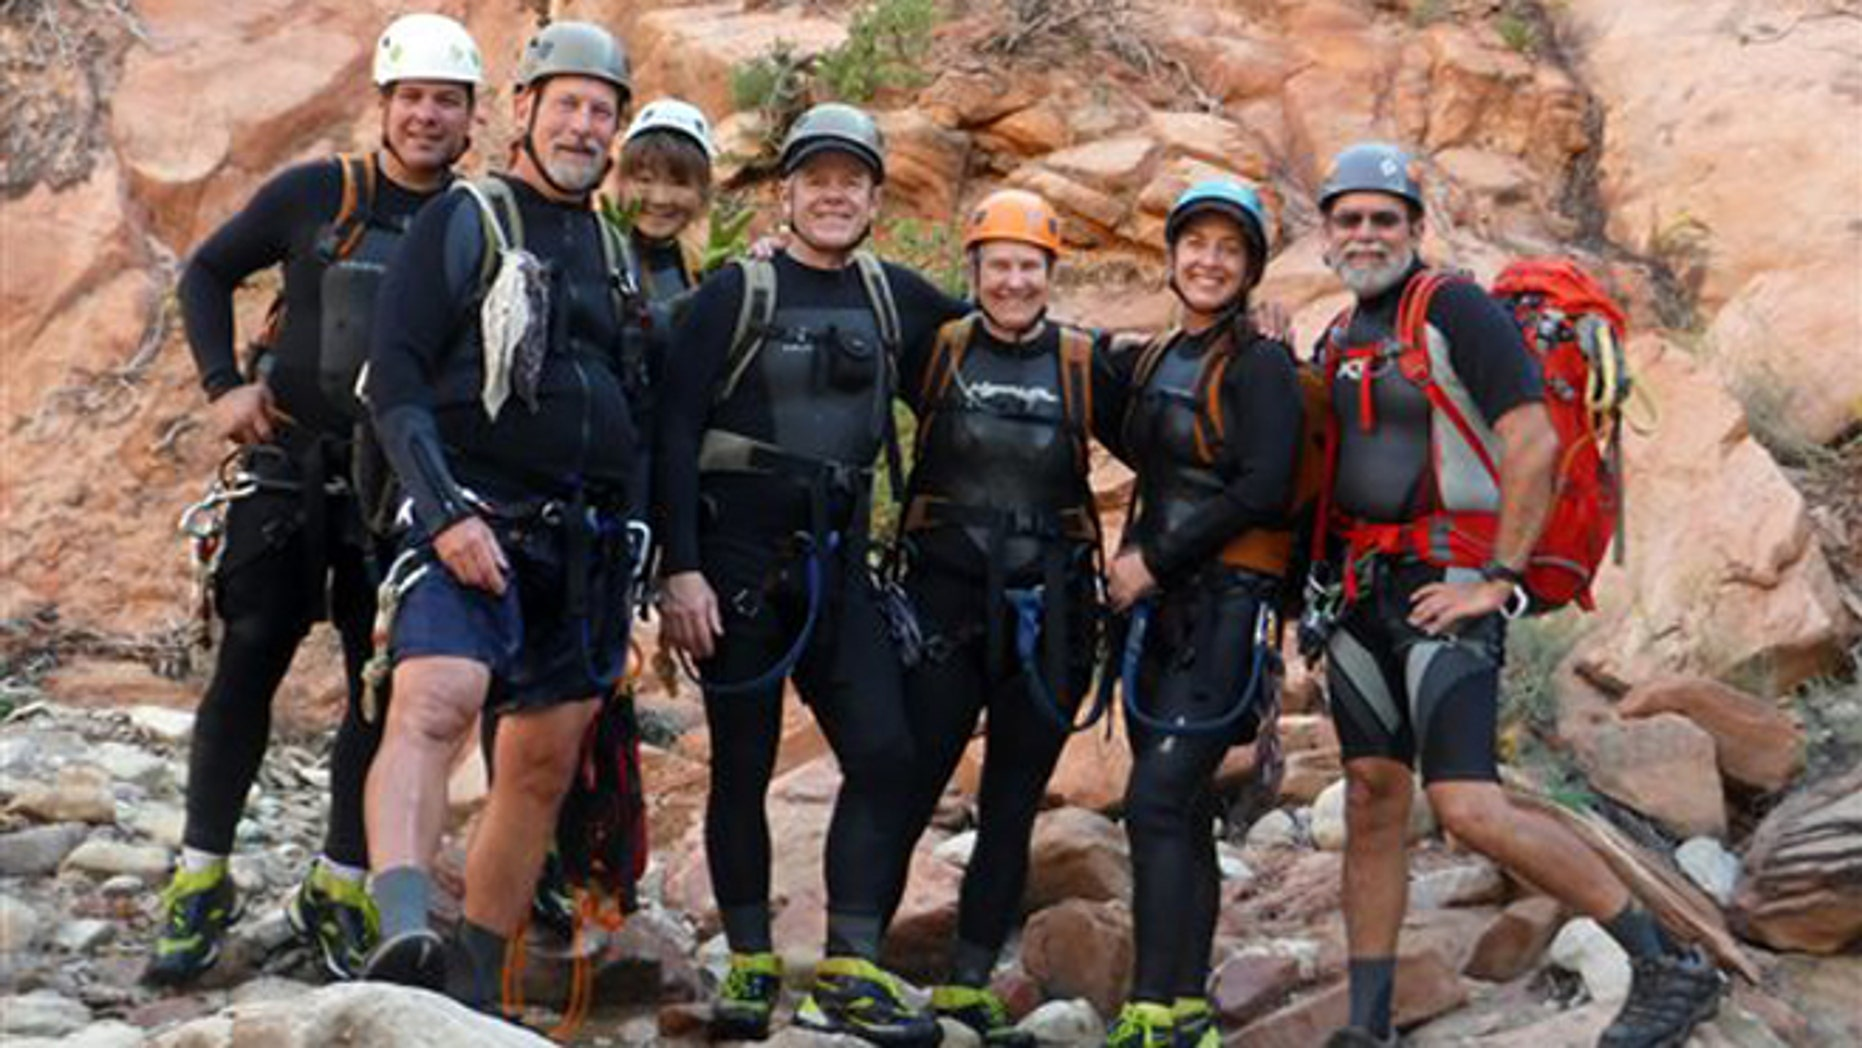 Sep. 18, 2015: This photo released by National Park Service shows from left to right: Gary Favela, Don Teichner, Muku Reynolds, Steve Arthur, Linda Arthur, Robin Brum, and Mark MacKenzie.  The hikers, six from California and one from Nevada, died when fast-moving floodwaters rushed through a narrow park canyon Sept. 14, 2015.